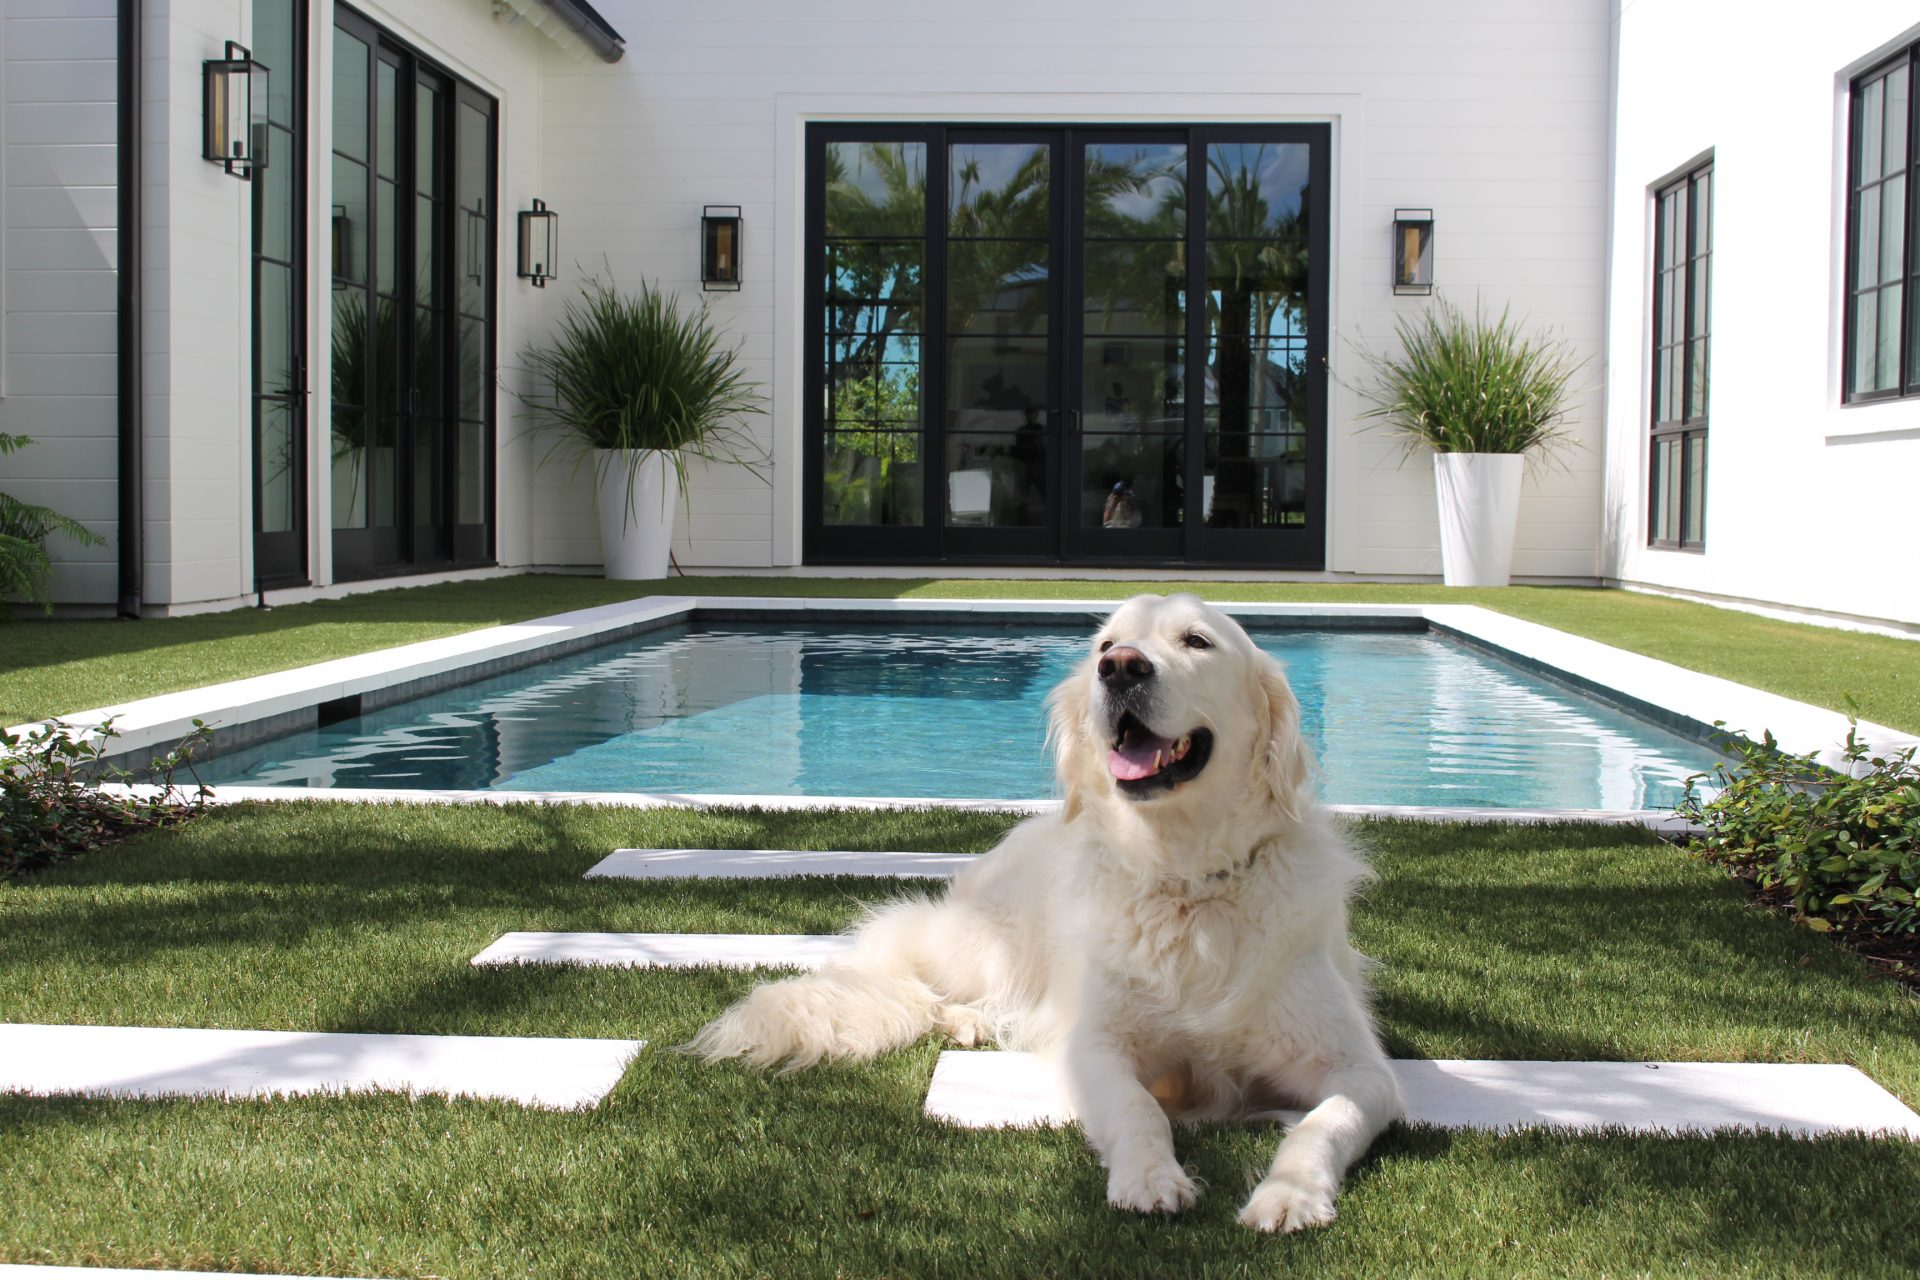 Dog on artificial grass lawn in Charleston, SC